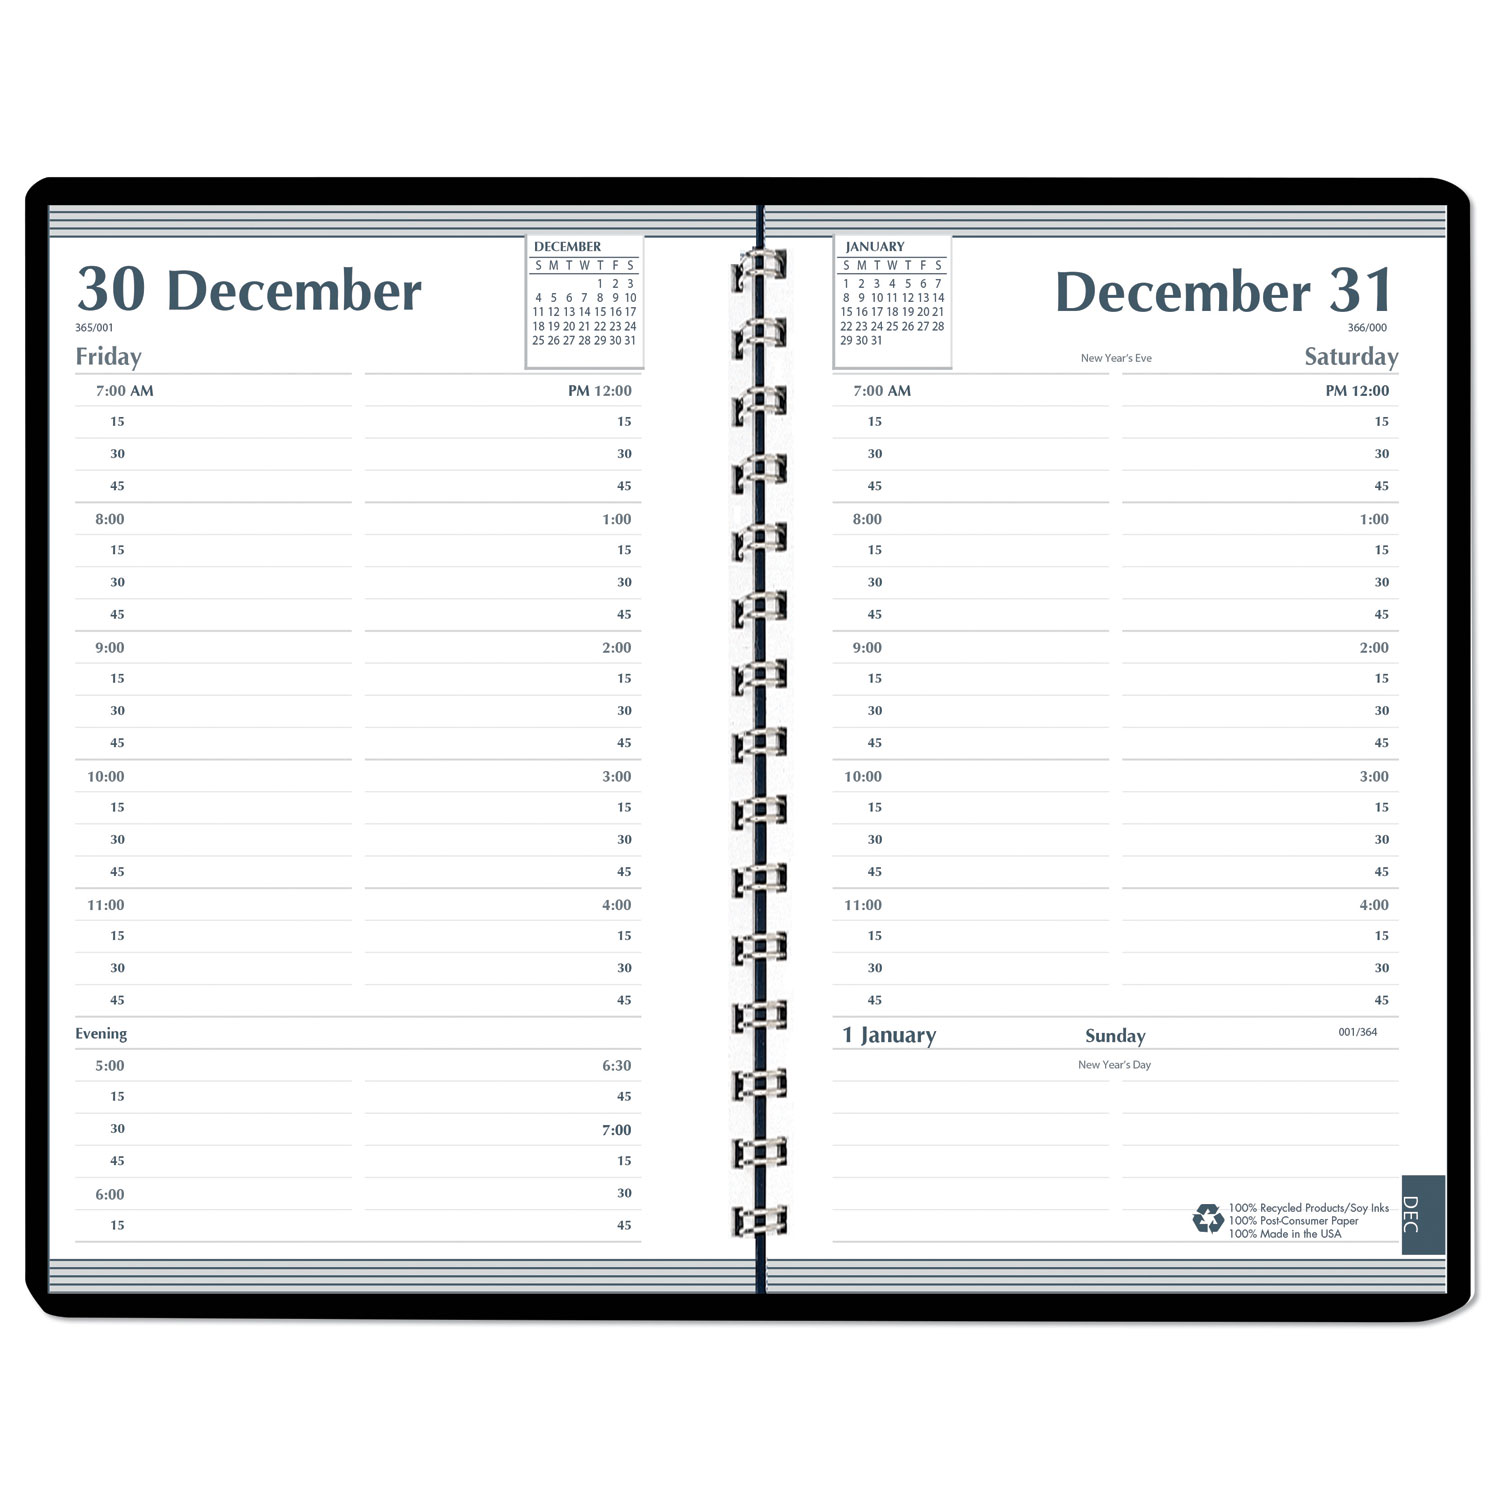 Daily Appointment Book, 15-Minute Appointments, 8 x 5